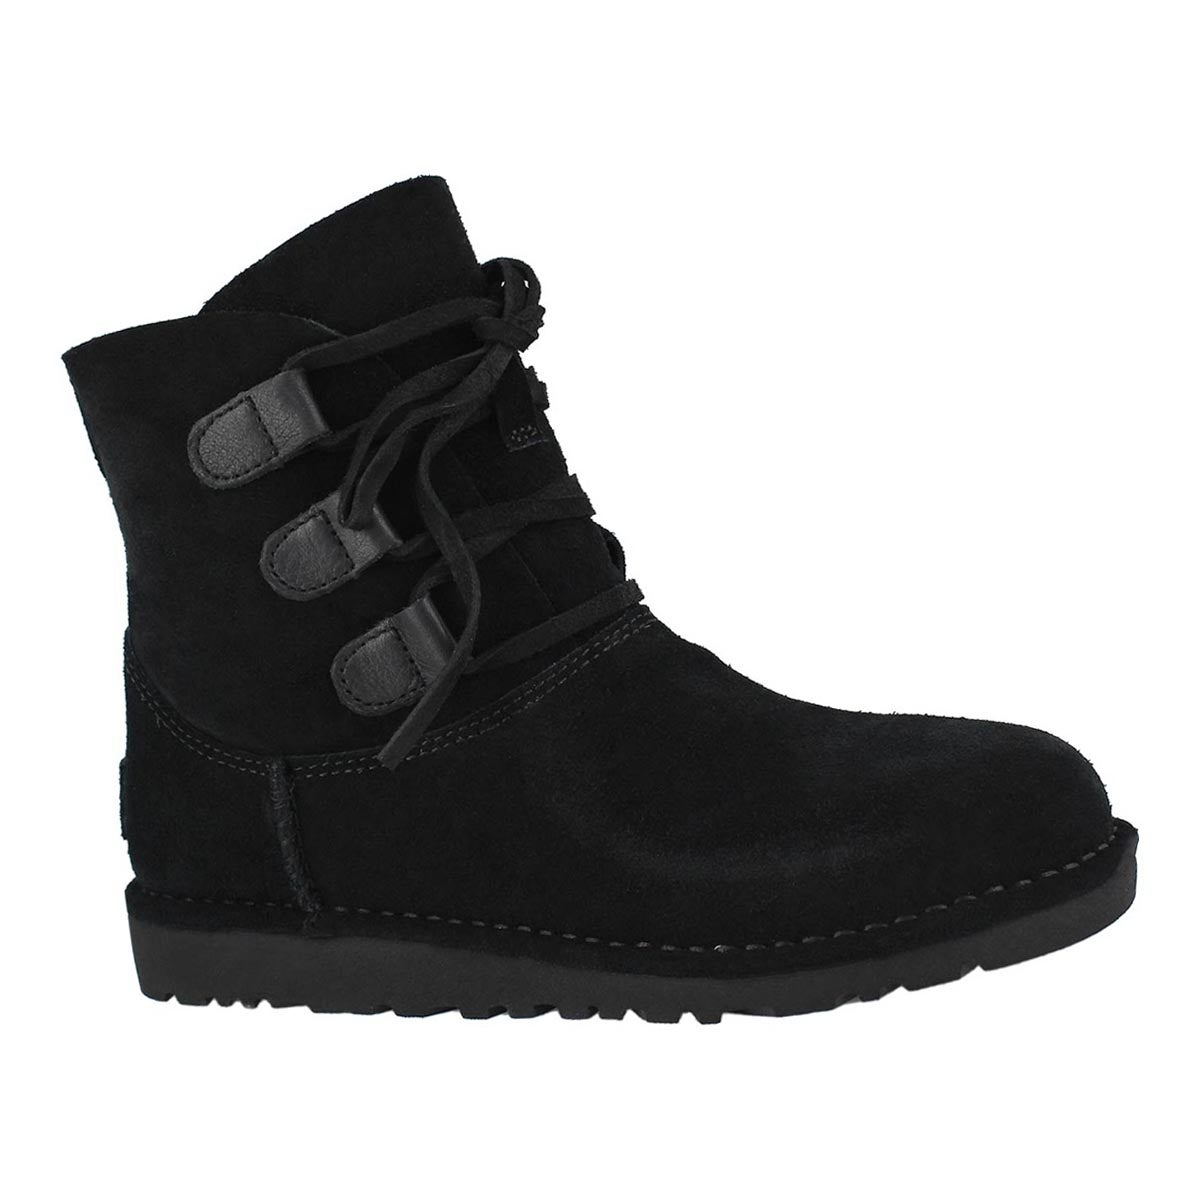 Lds Elvi black casual boot